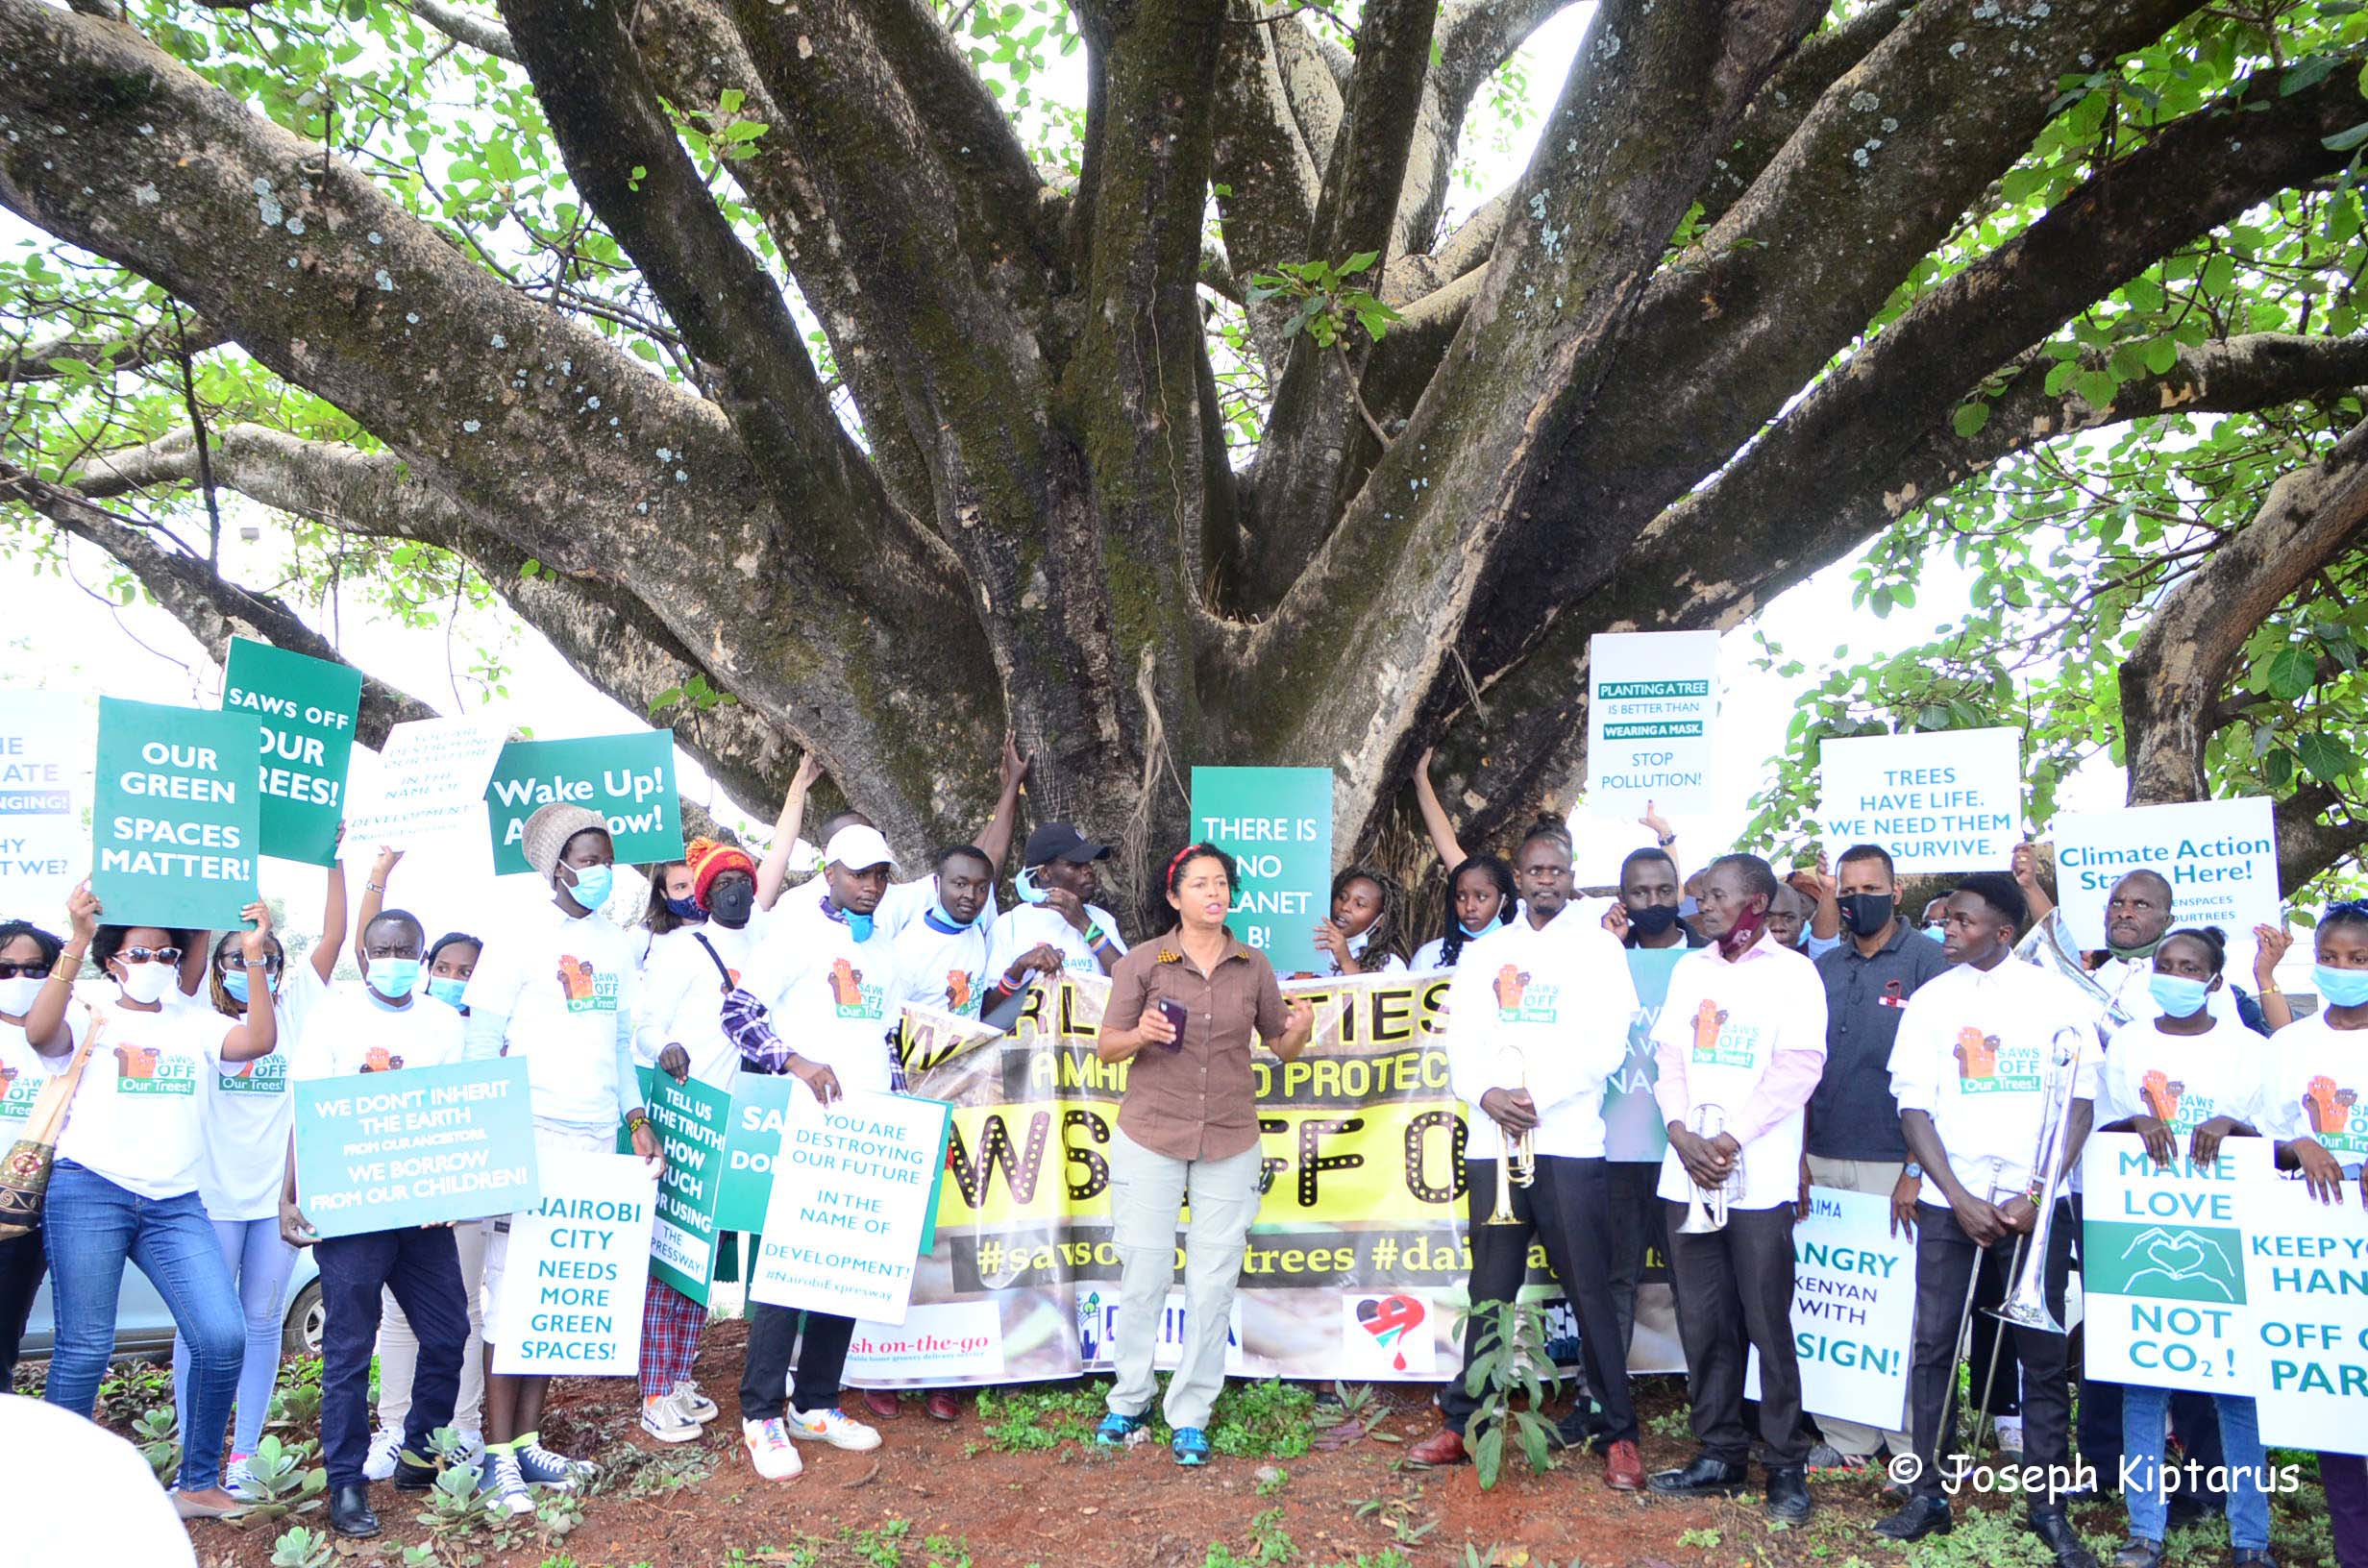 A March To Protect Our Trees